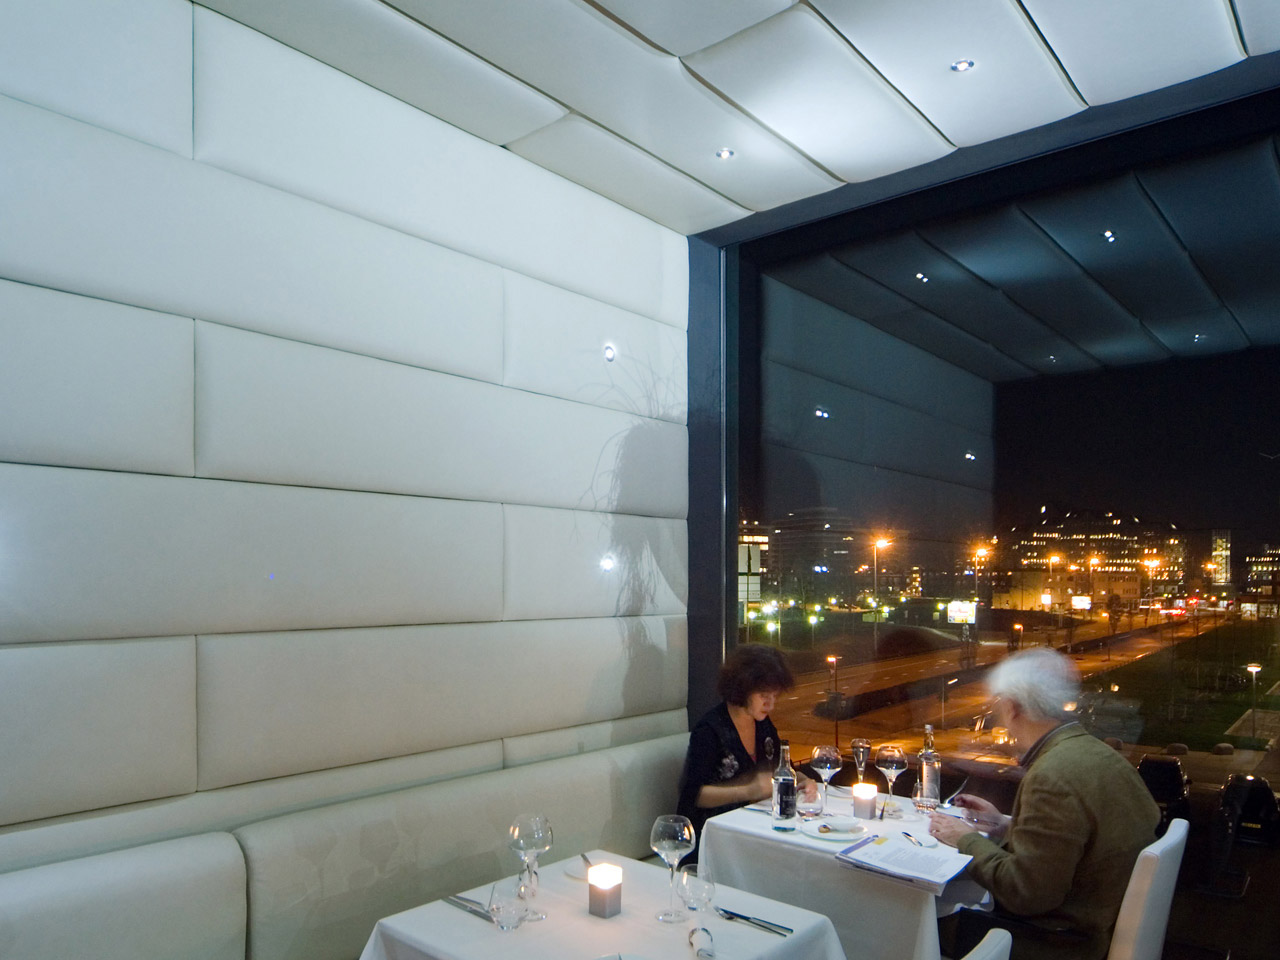 Panels of crème skai leather cover the ceiling and walls of the first floor of restaurant Divinatio and create intimacy. At night, the visual flair of the establishment is enhanced by small LED spots.